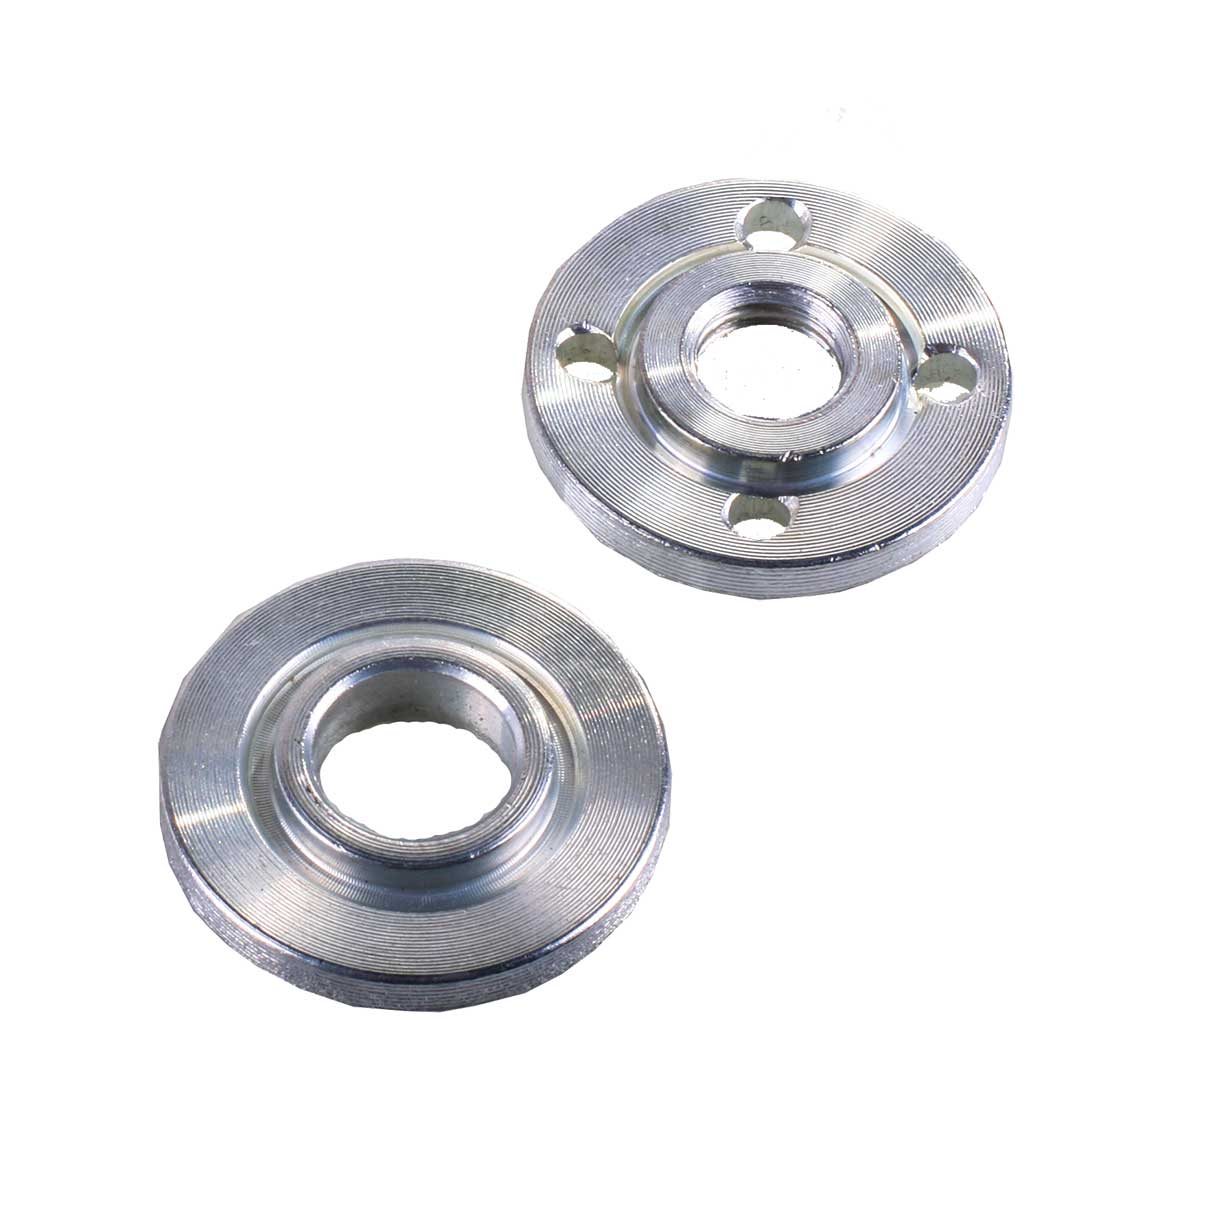 Silverline Replacement Flange Set M14 for Angle Grinders